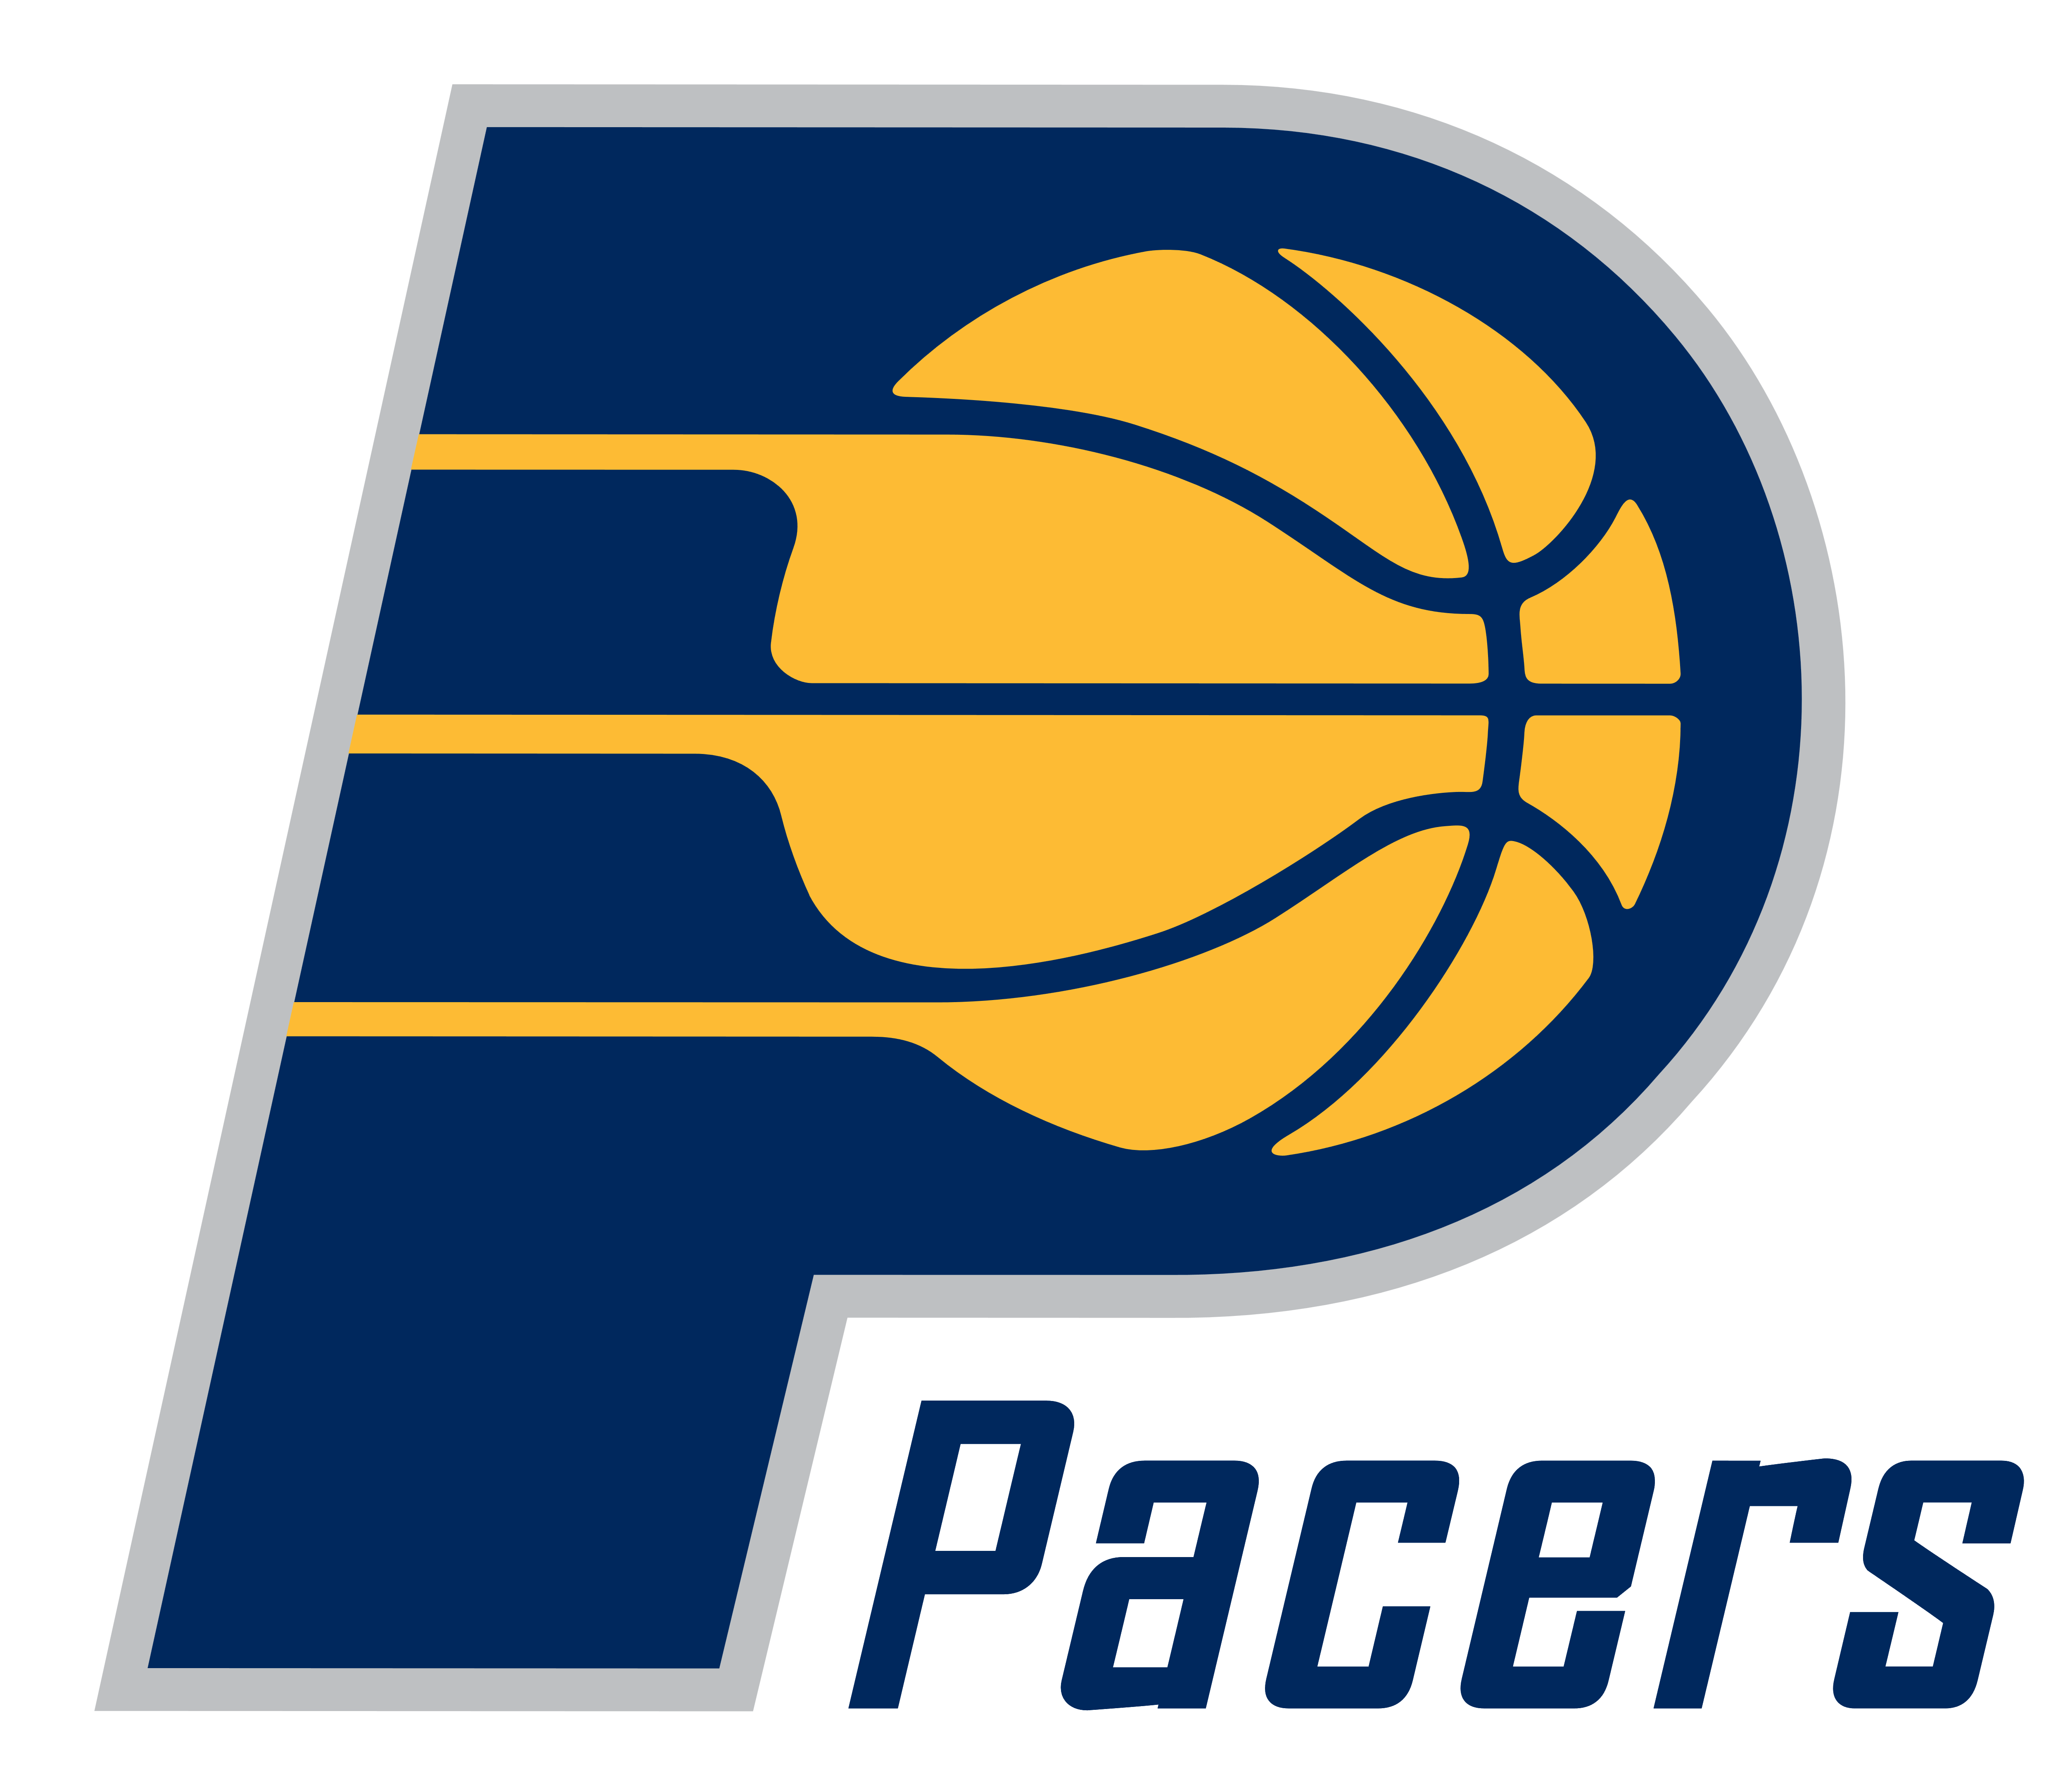 Indiana Pacers.